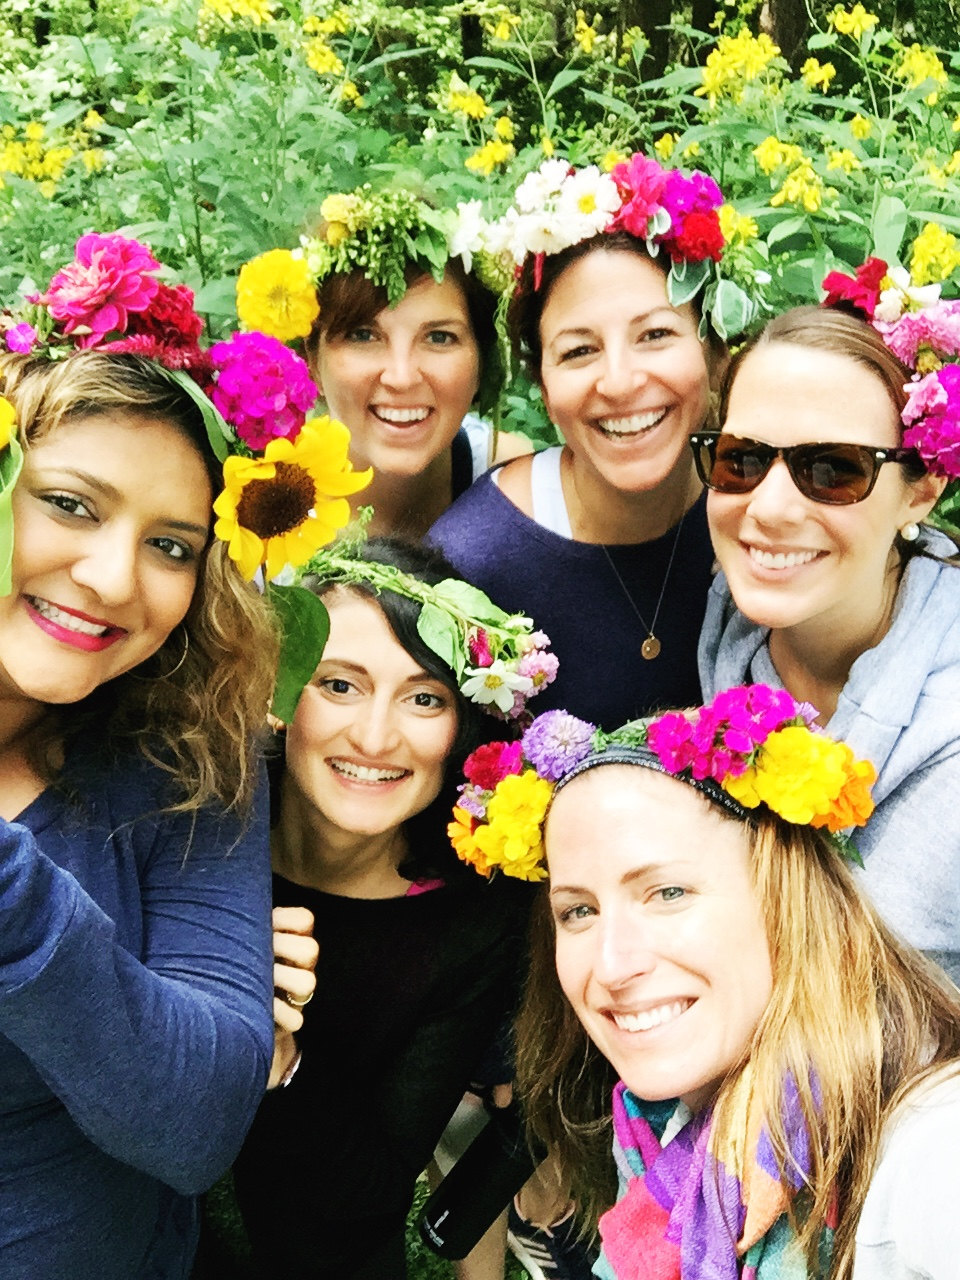 And last but certainly not least, I ended the month with a wonderful morning of flower crown making, yoga, and brunch, hosted by GroundSwell Collective, 3 Sisters Yoga and Spice Acres Farms. It was such a fun way to spend the day with my girlfriends Charity, Danielle, Reena, Laura and Sunny!